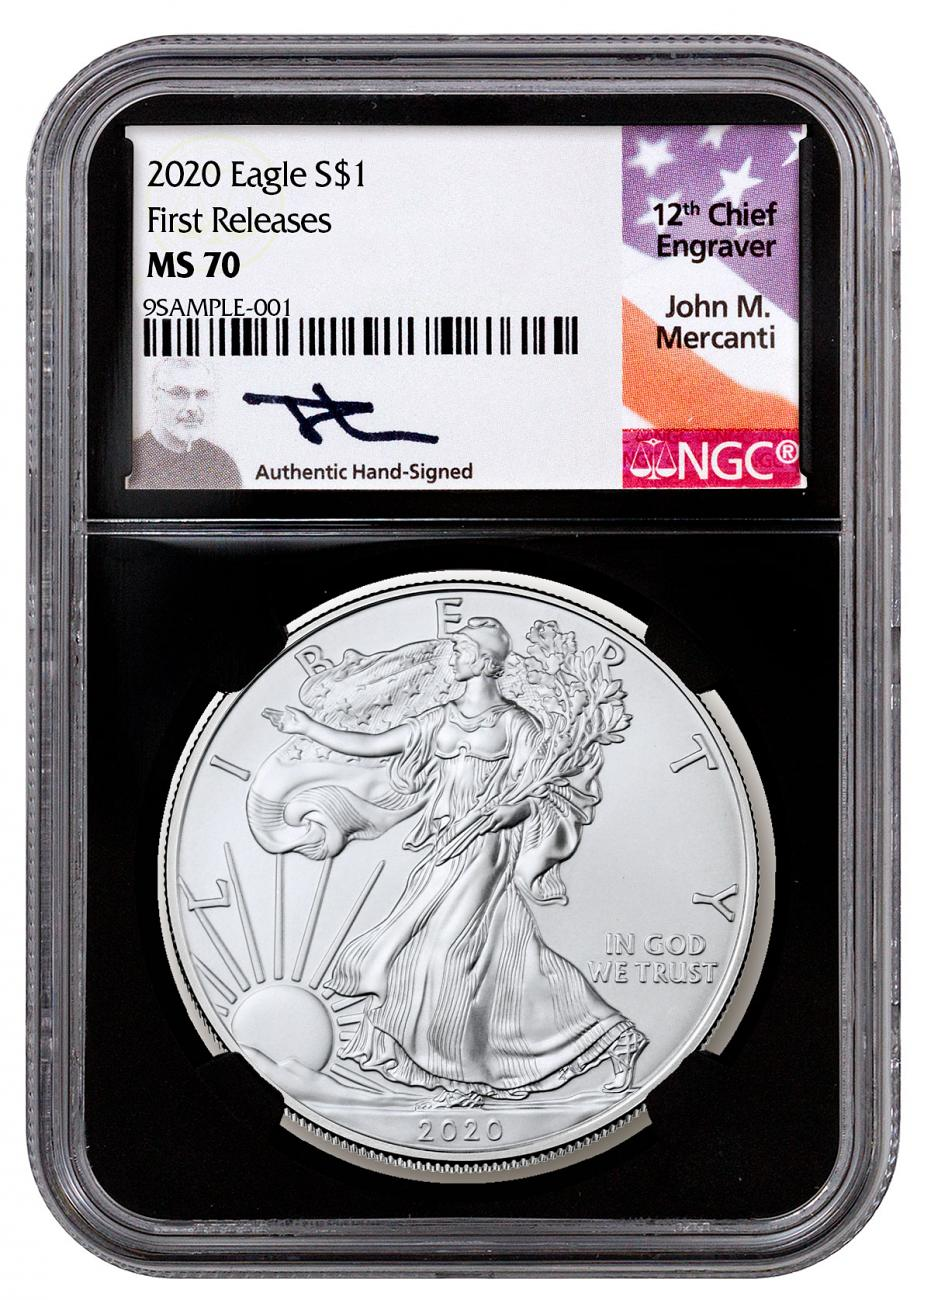 2020 1 oz American Silver Eagle $1 Coin NGC MS70 FR Black Core Holder Mercanti Signed Label